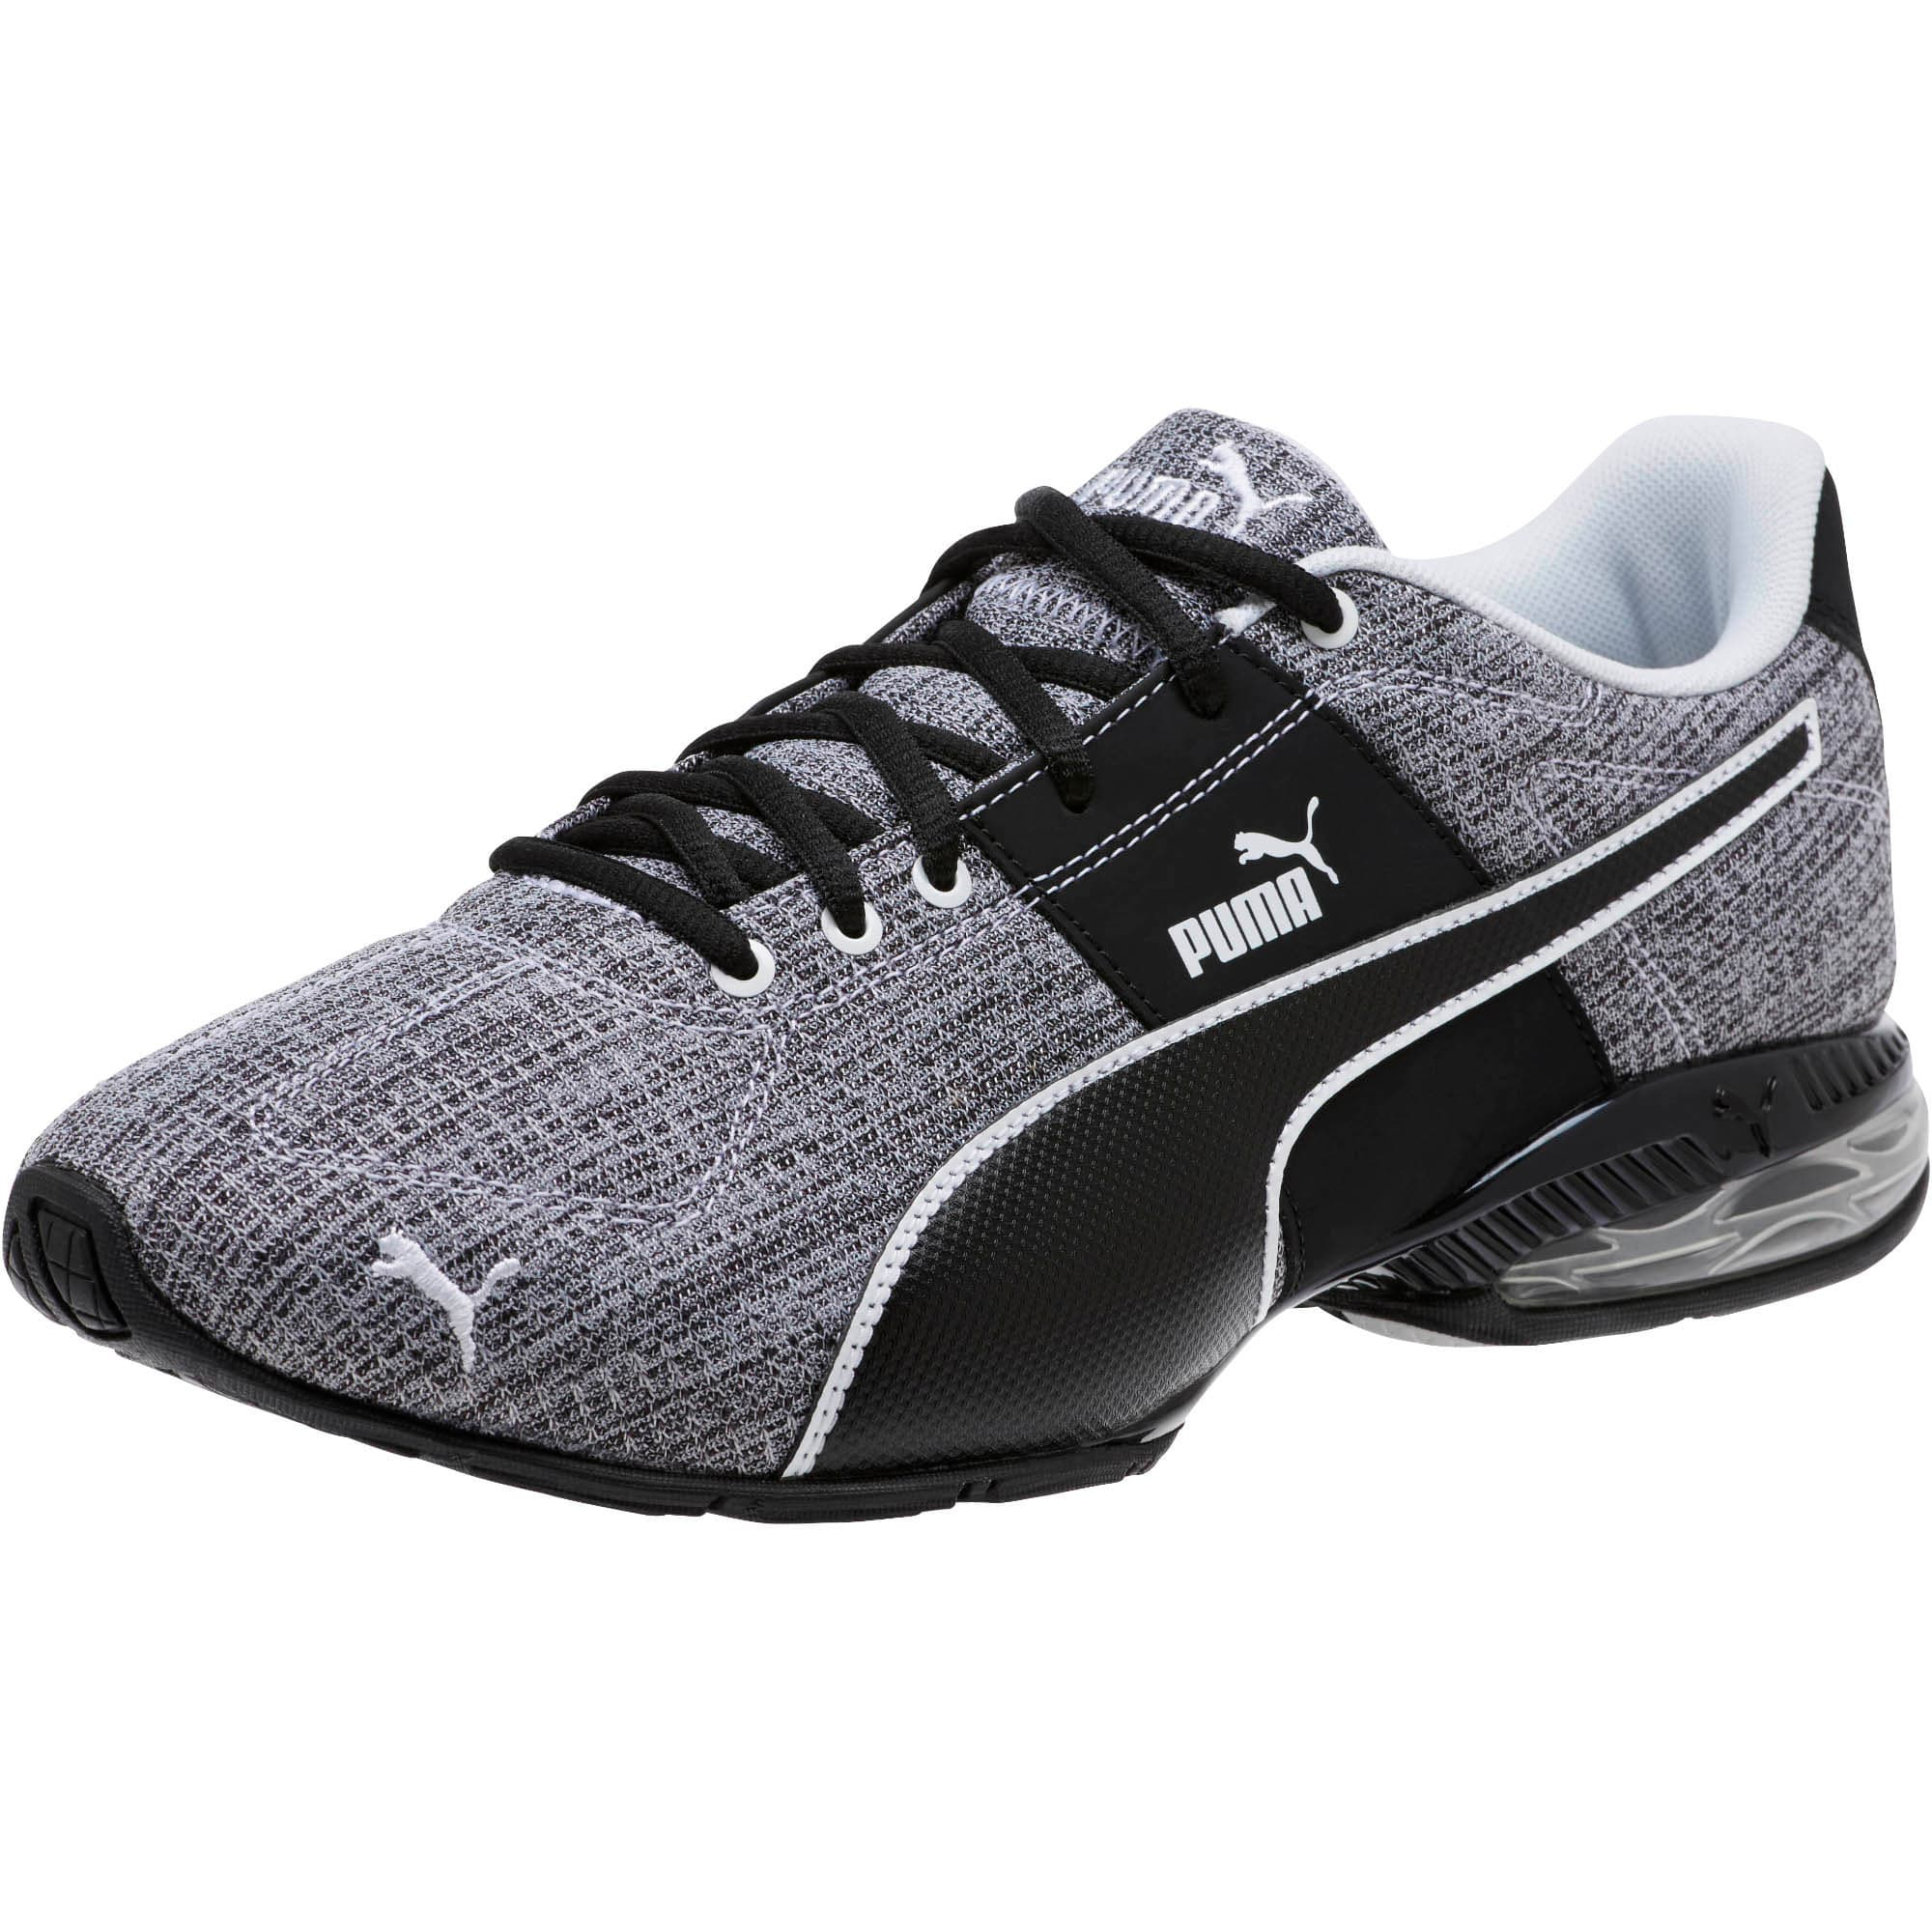 Thumbnail 1 of CELL Surin 2 Heather Men's Running Shoes, Puma Black-Puma White, medium